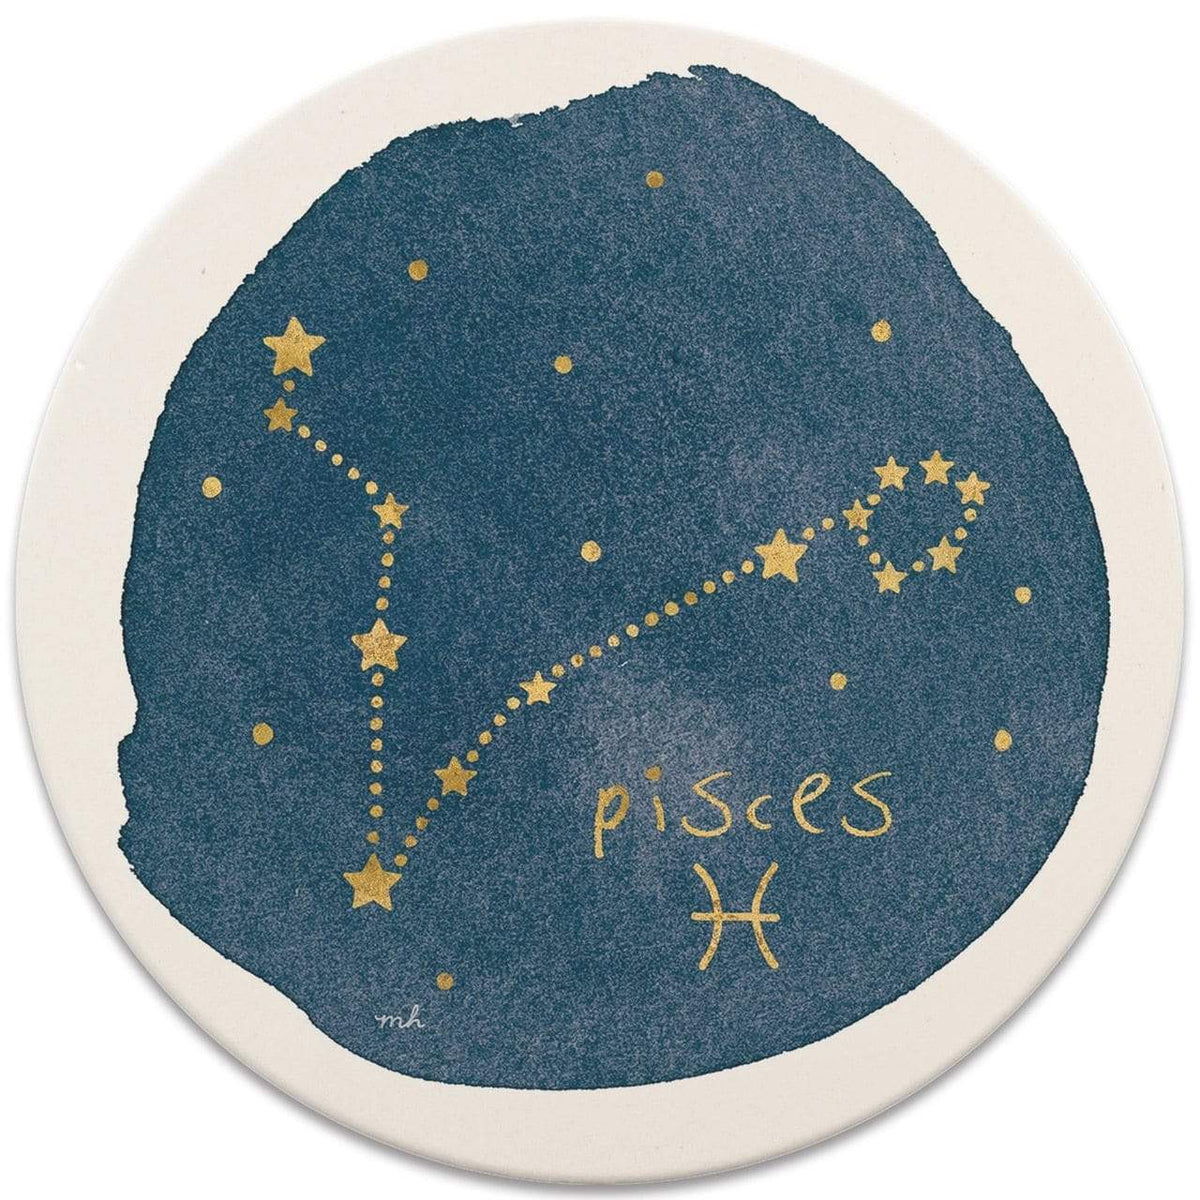 CoasterStone Coasters Pisces Sign Coaster - Set of 4